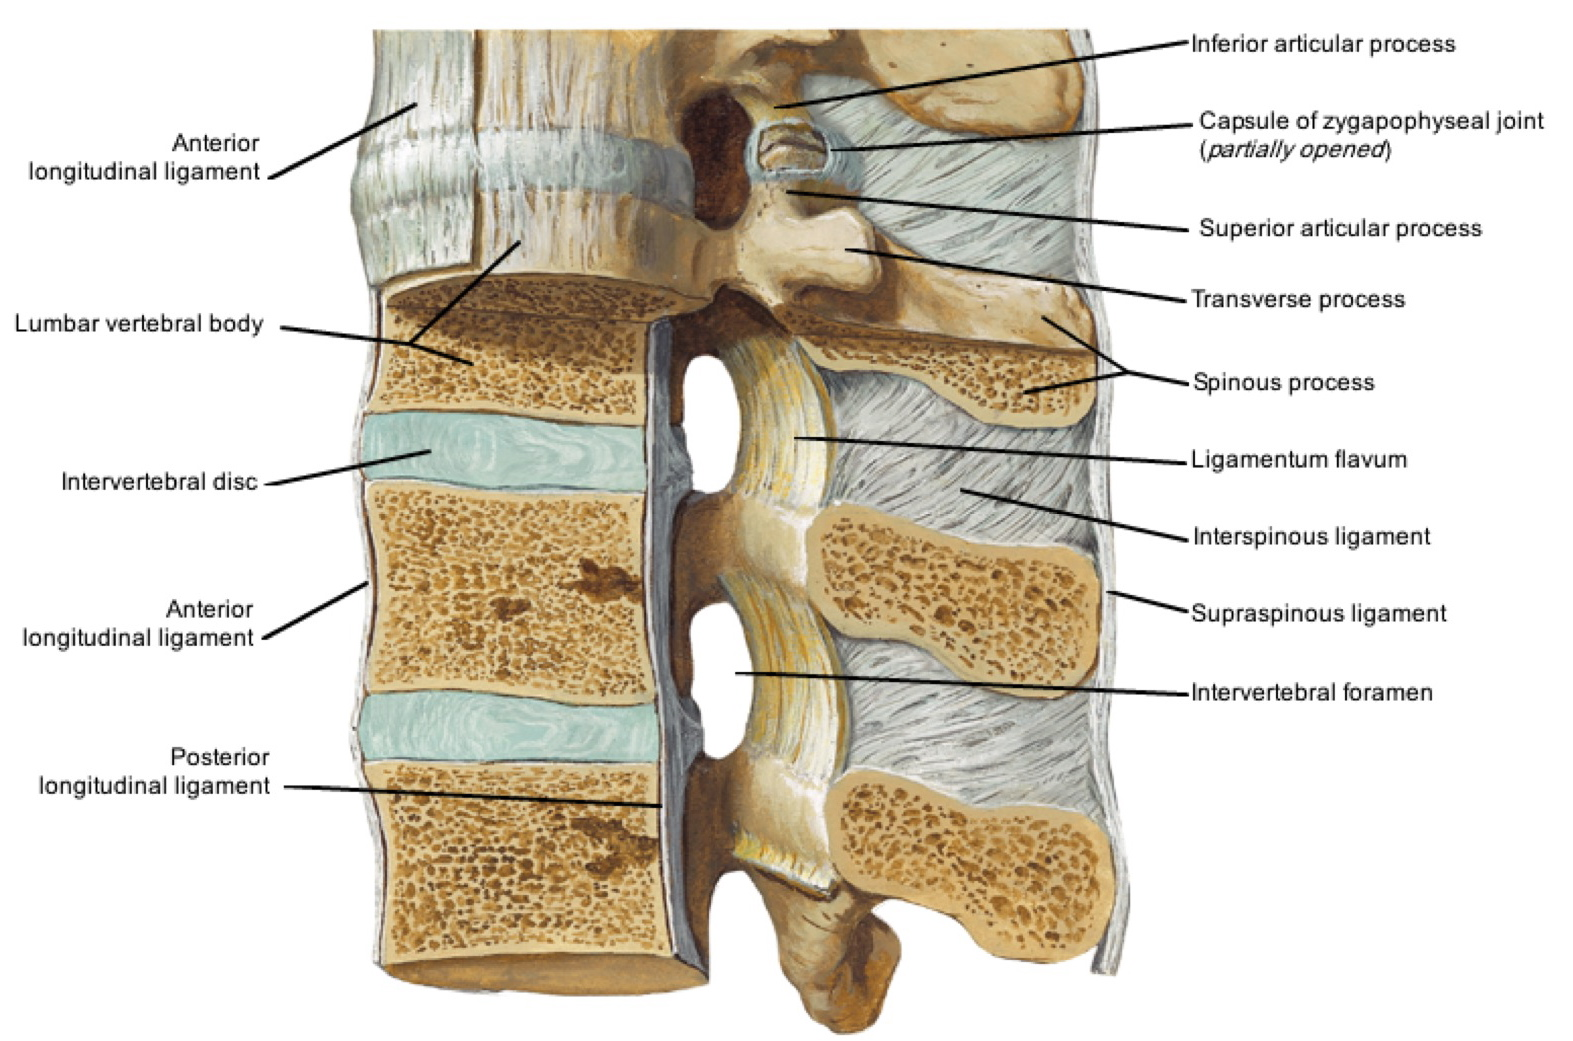 Notes on Anatomy and Physiology: The Spinal Ligaments - Holding All ...